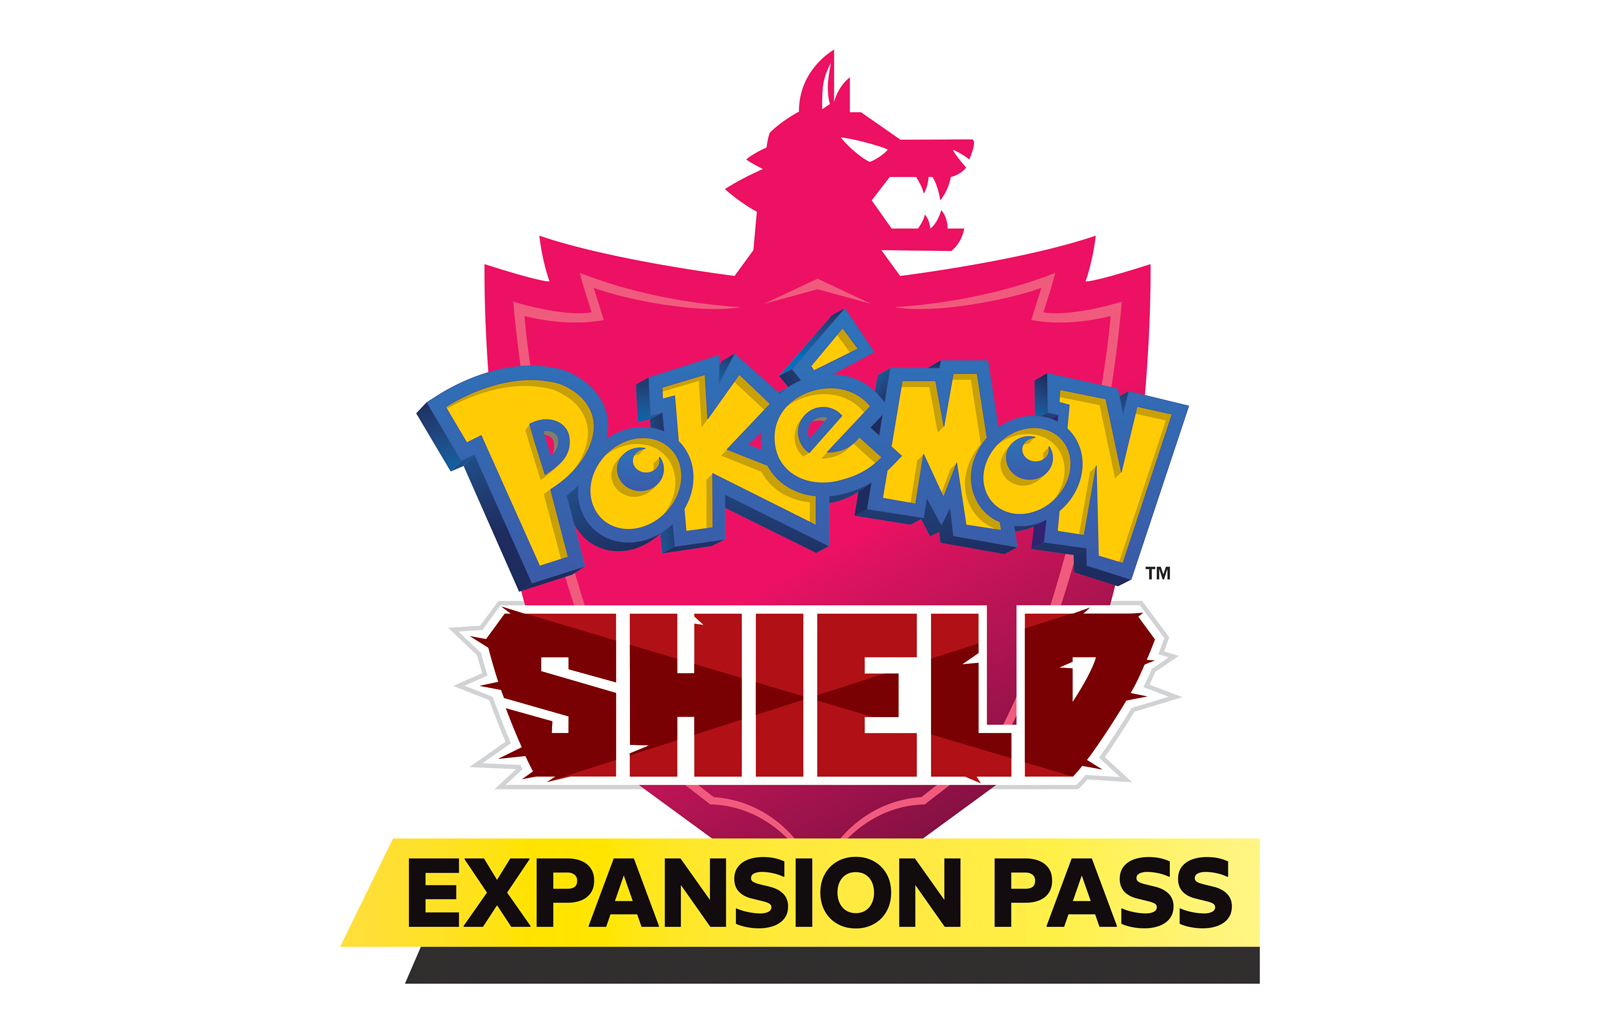 Pokemon-Sword-and-Shield_2020_01-09-20_002